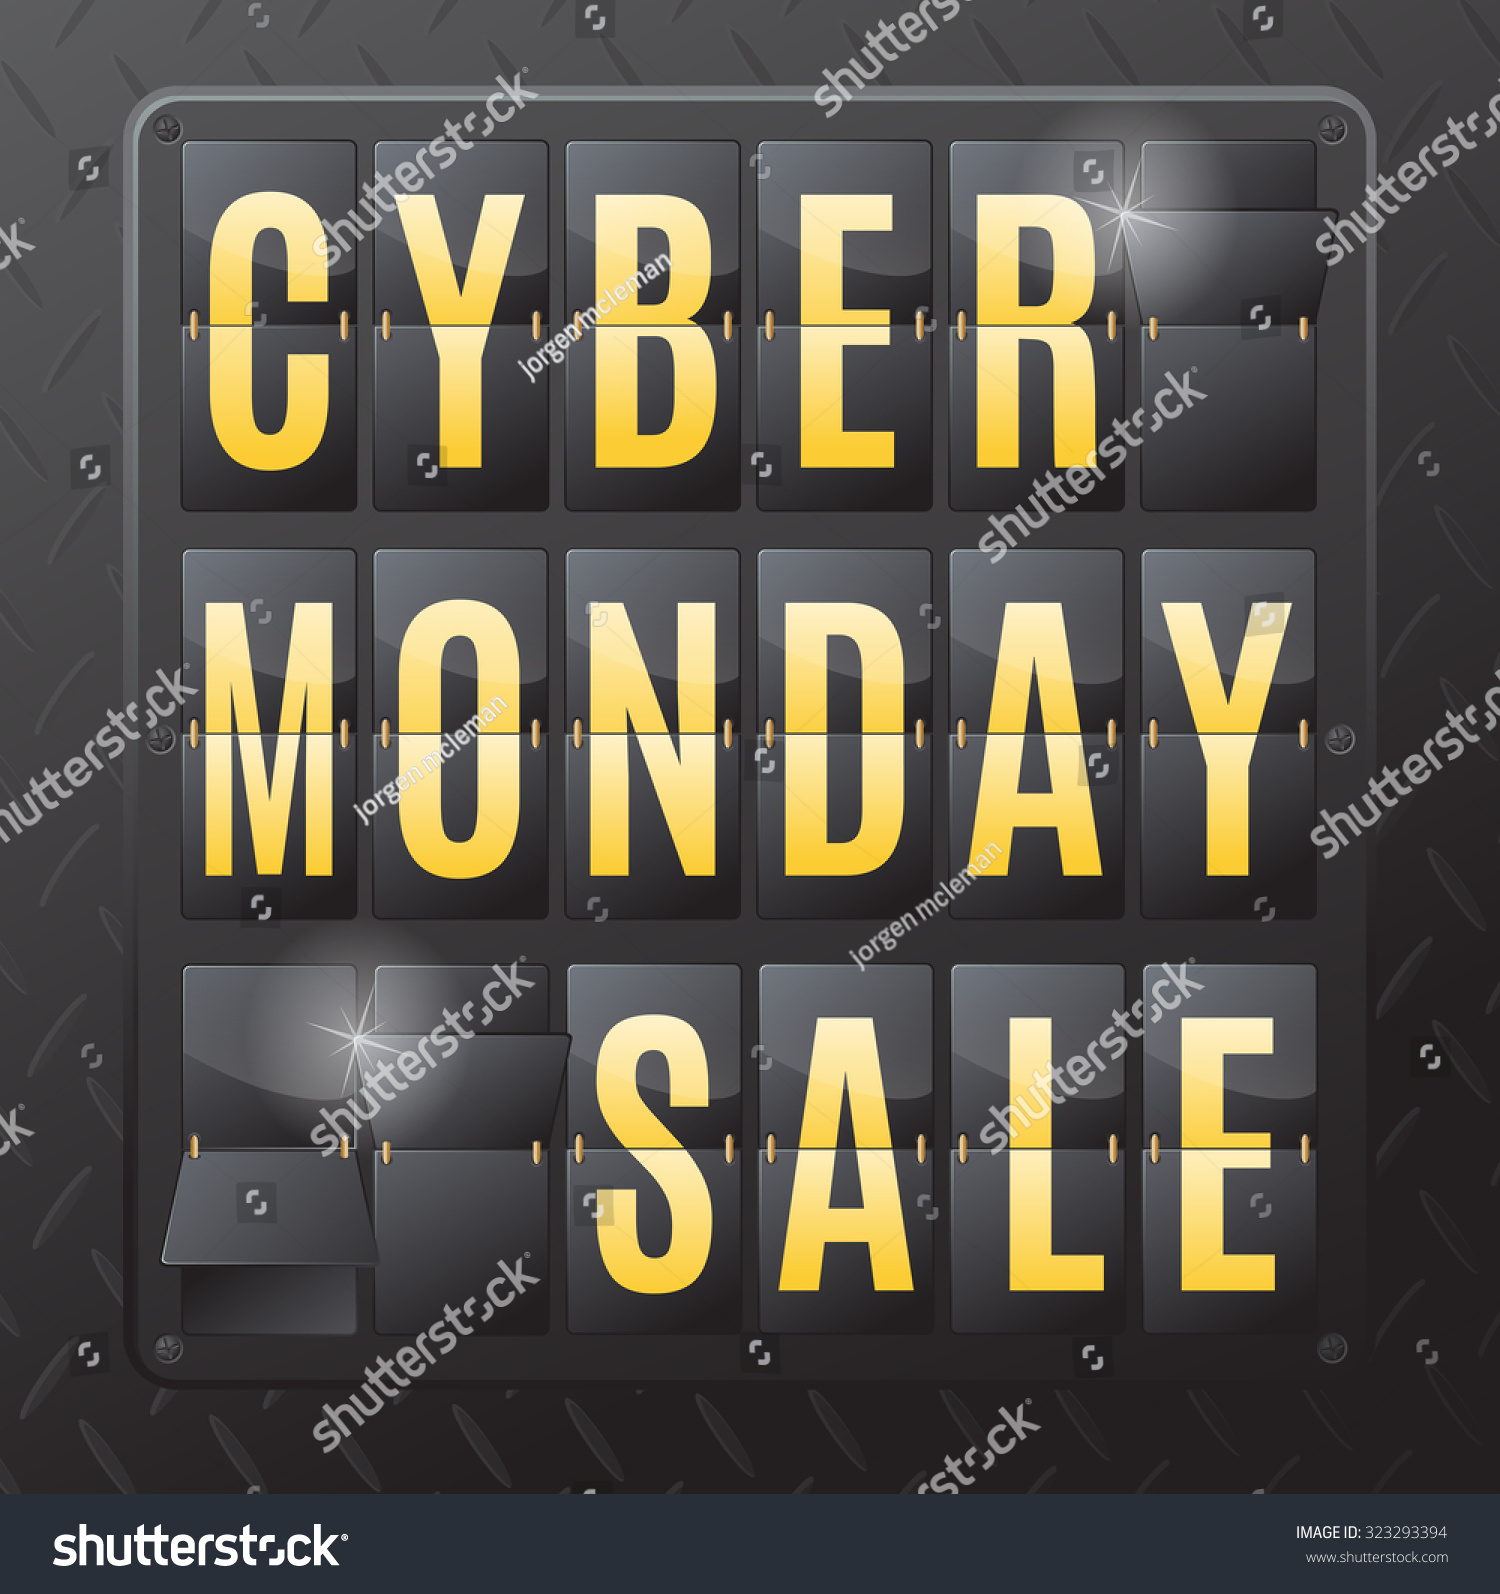 Cyber Monday Day Following Thanksgiving Day Stock Illustration 323293394